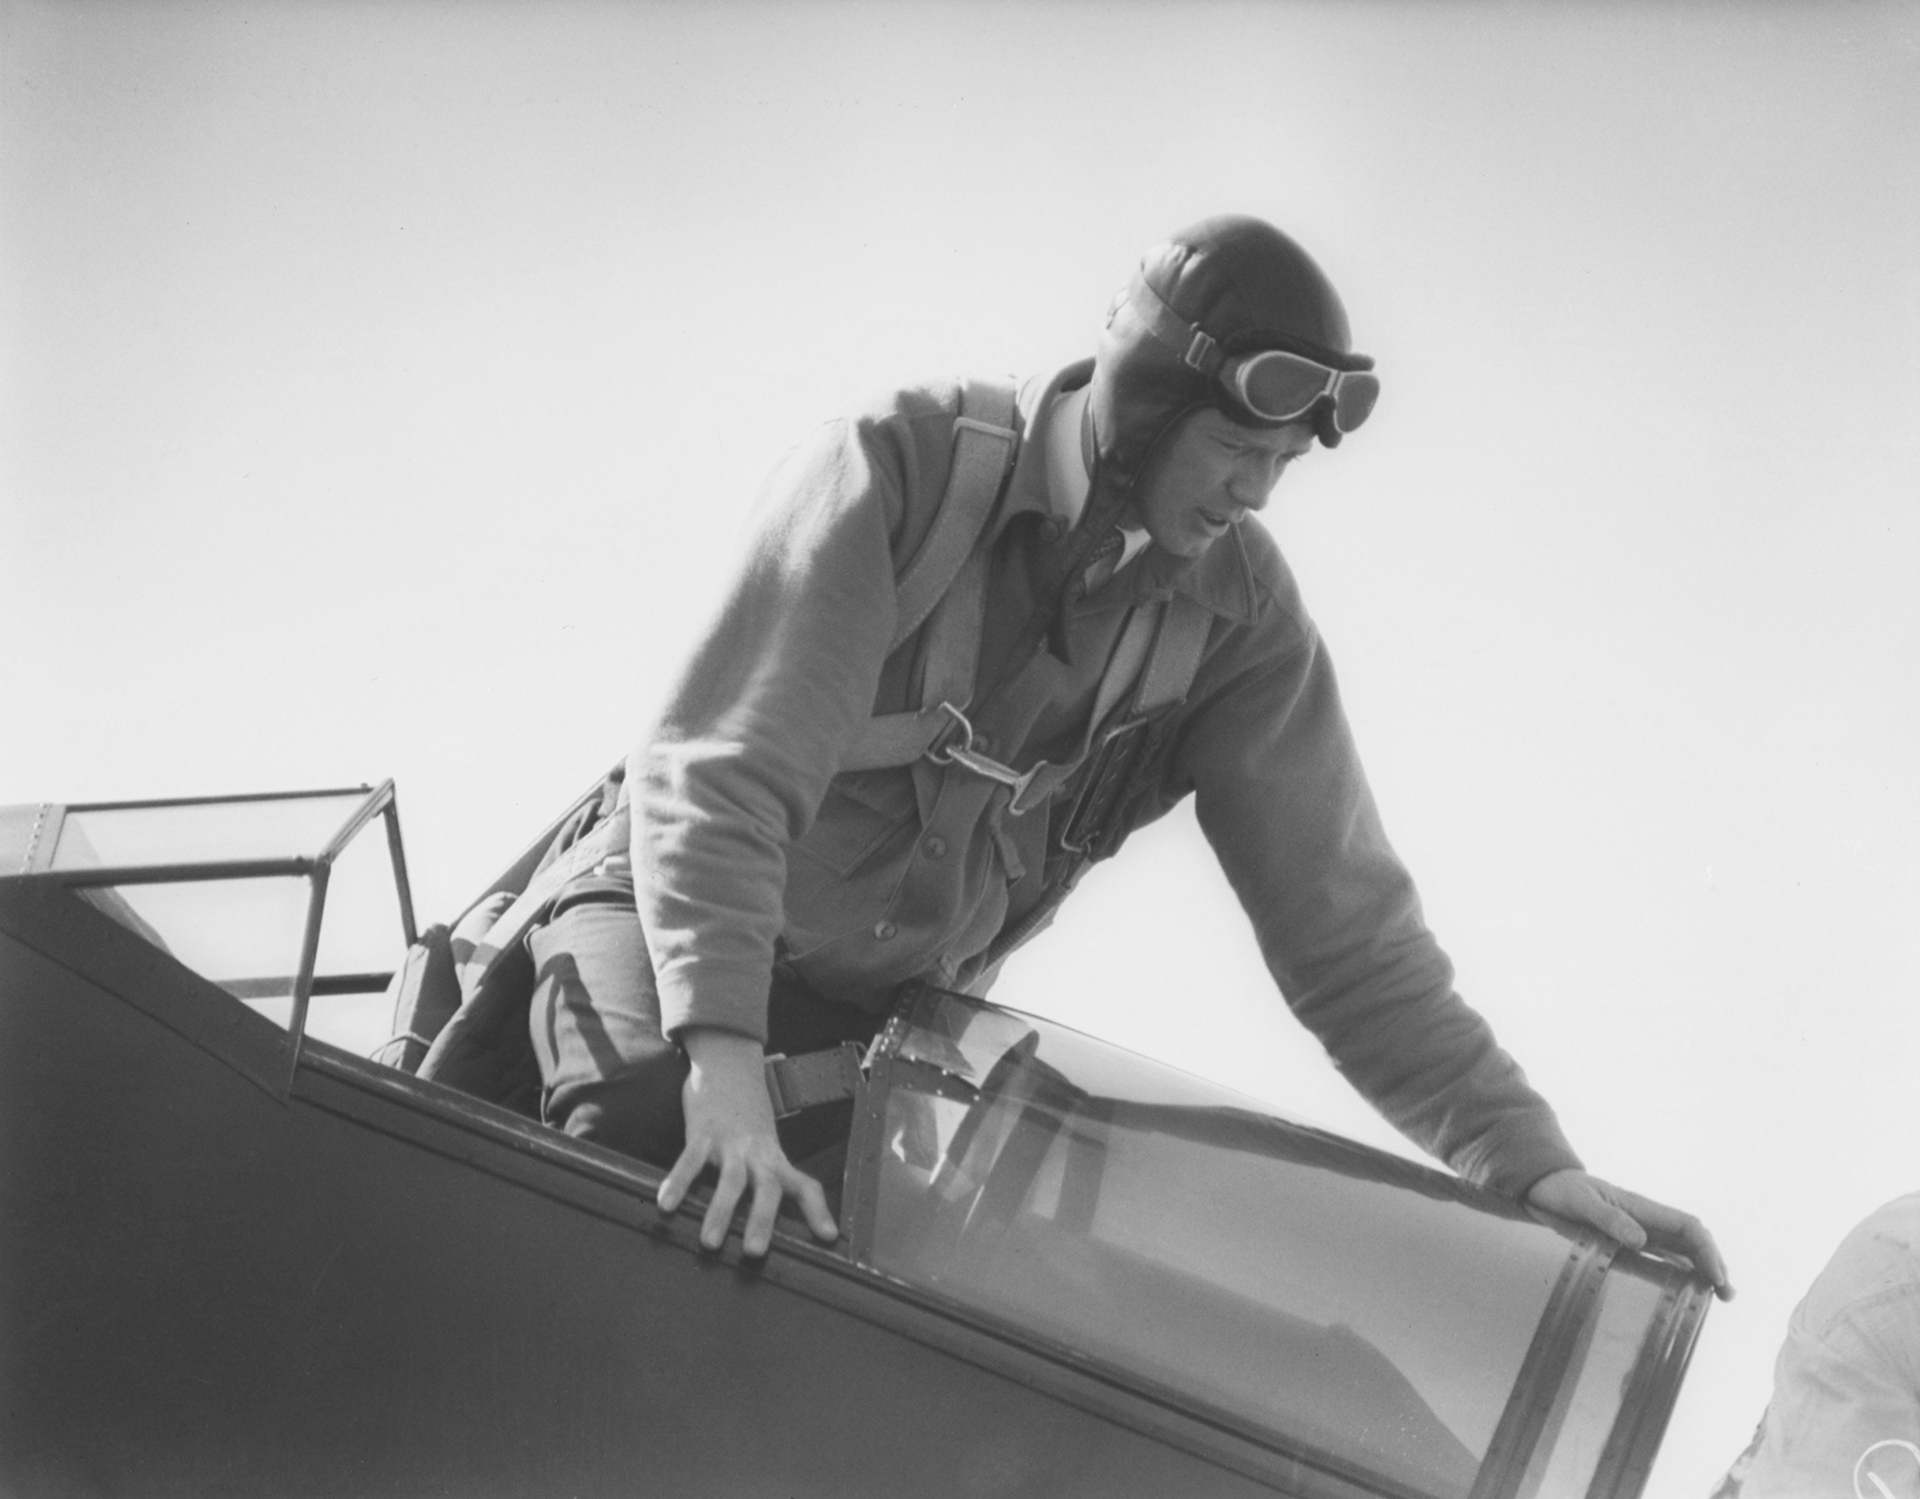 Charles Lindbergh climbs into the open cockpit of his Sirius.